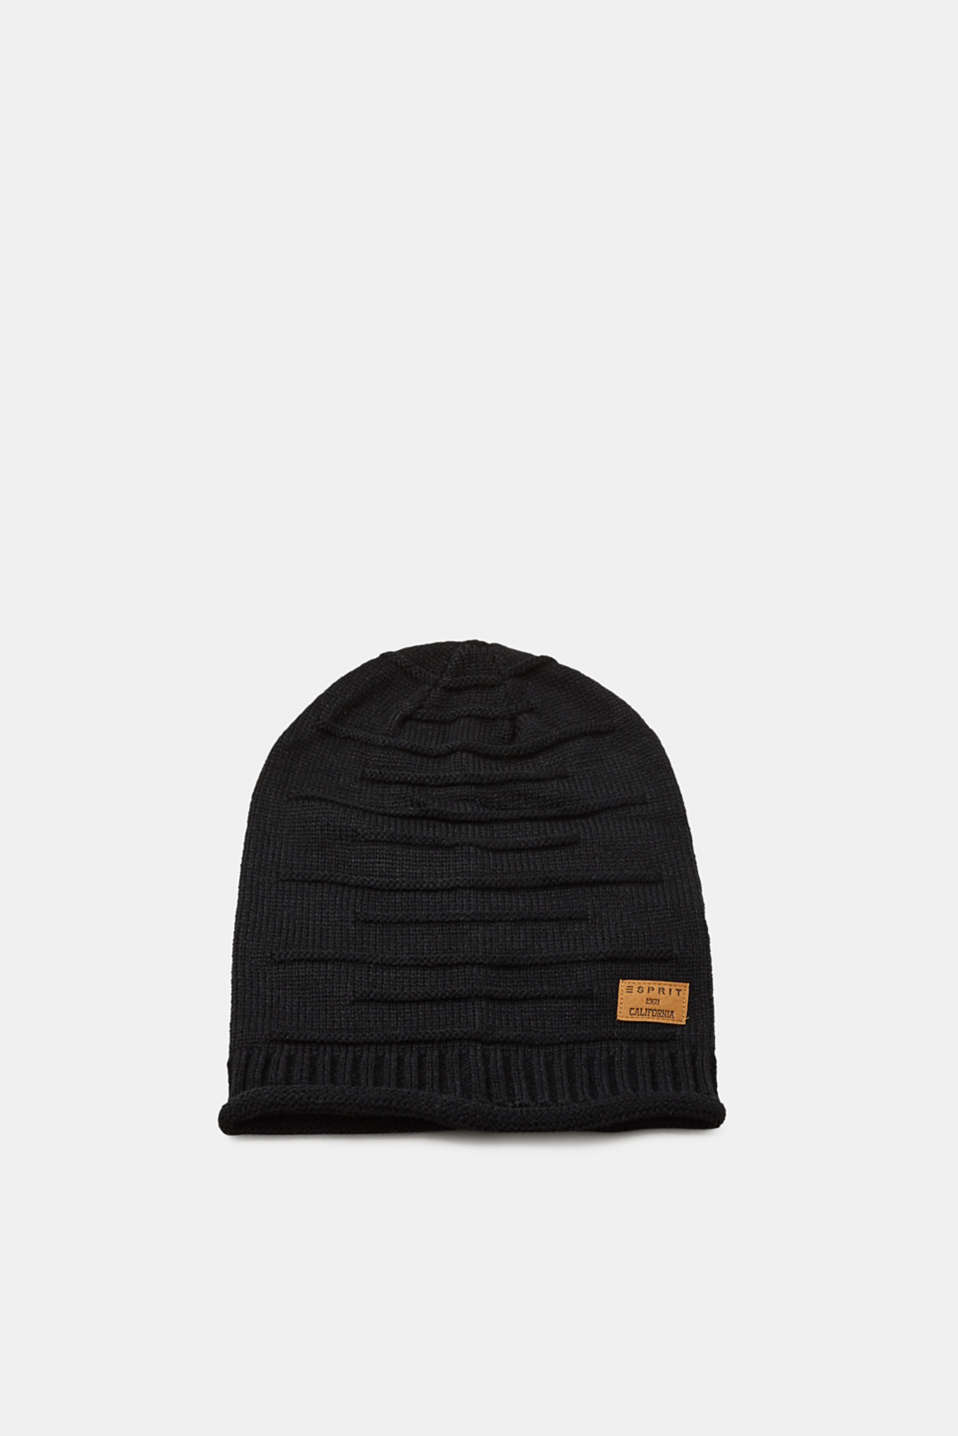 Esprit - Knit beanie with textured stripes